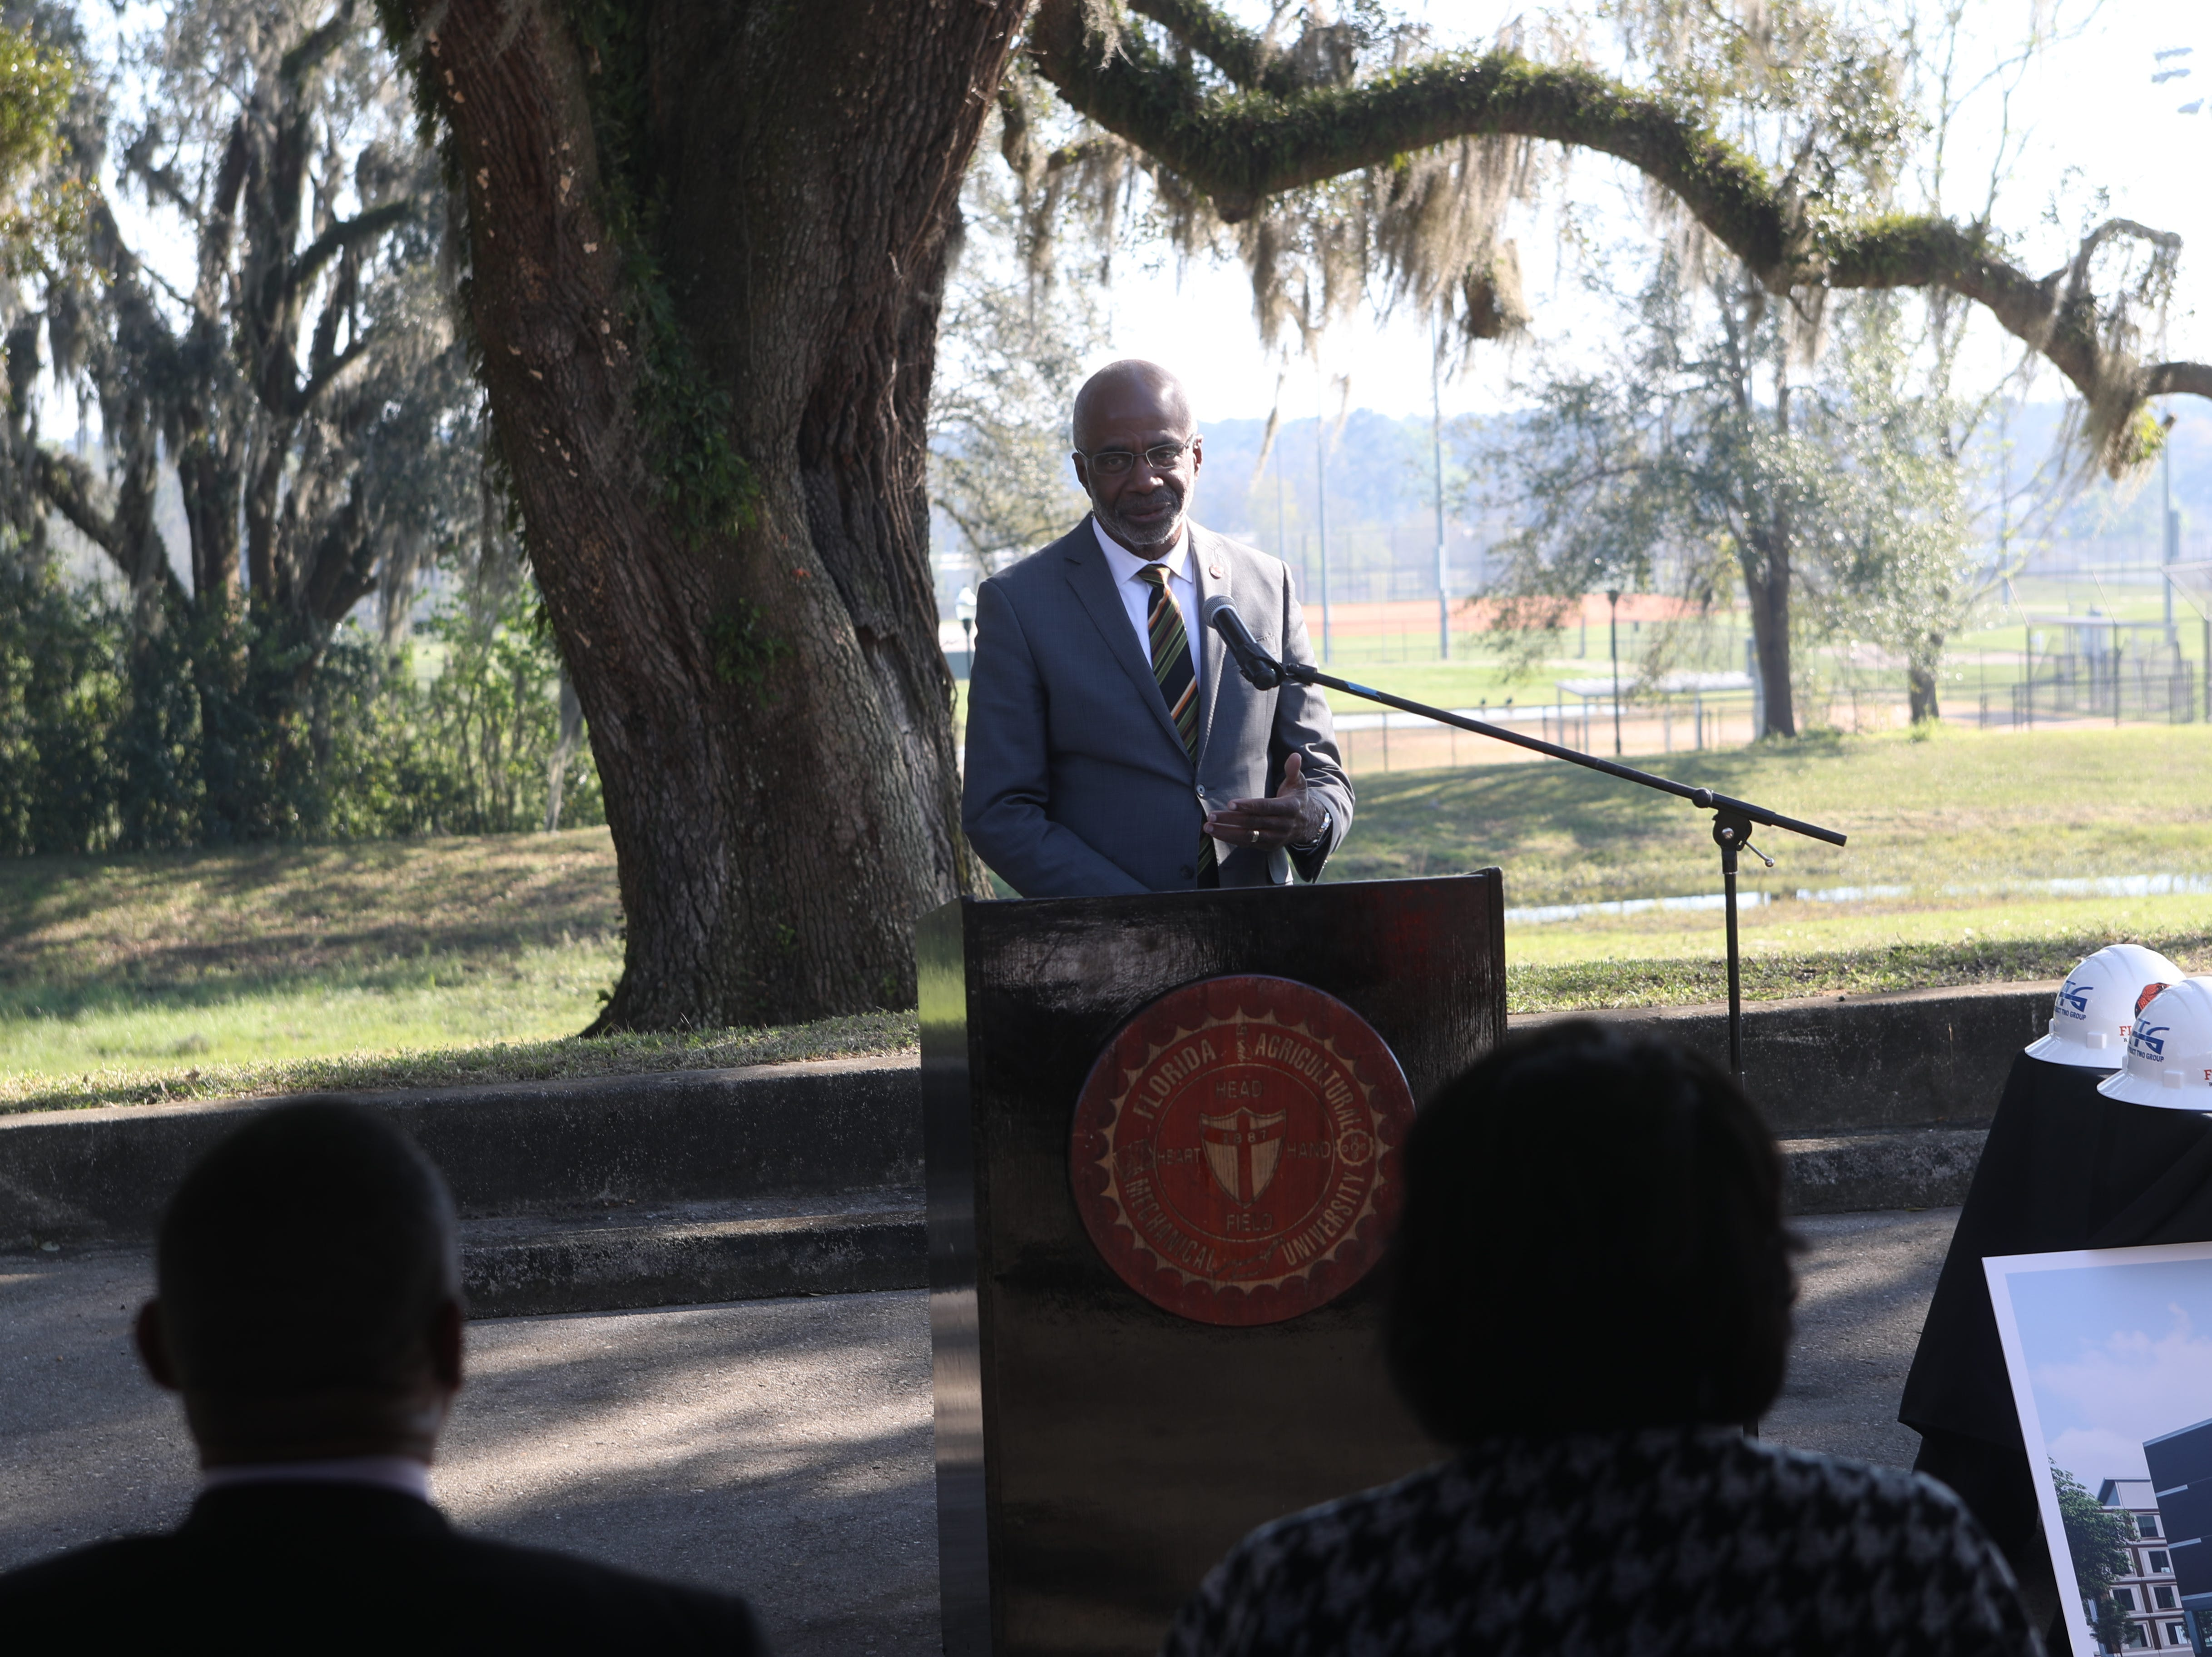 Florida A&M President Larry Robinson speaks during a groundbreaking celebration for a new residence hall on the Florida A&M campus Wednesday, March 6, 2019.